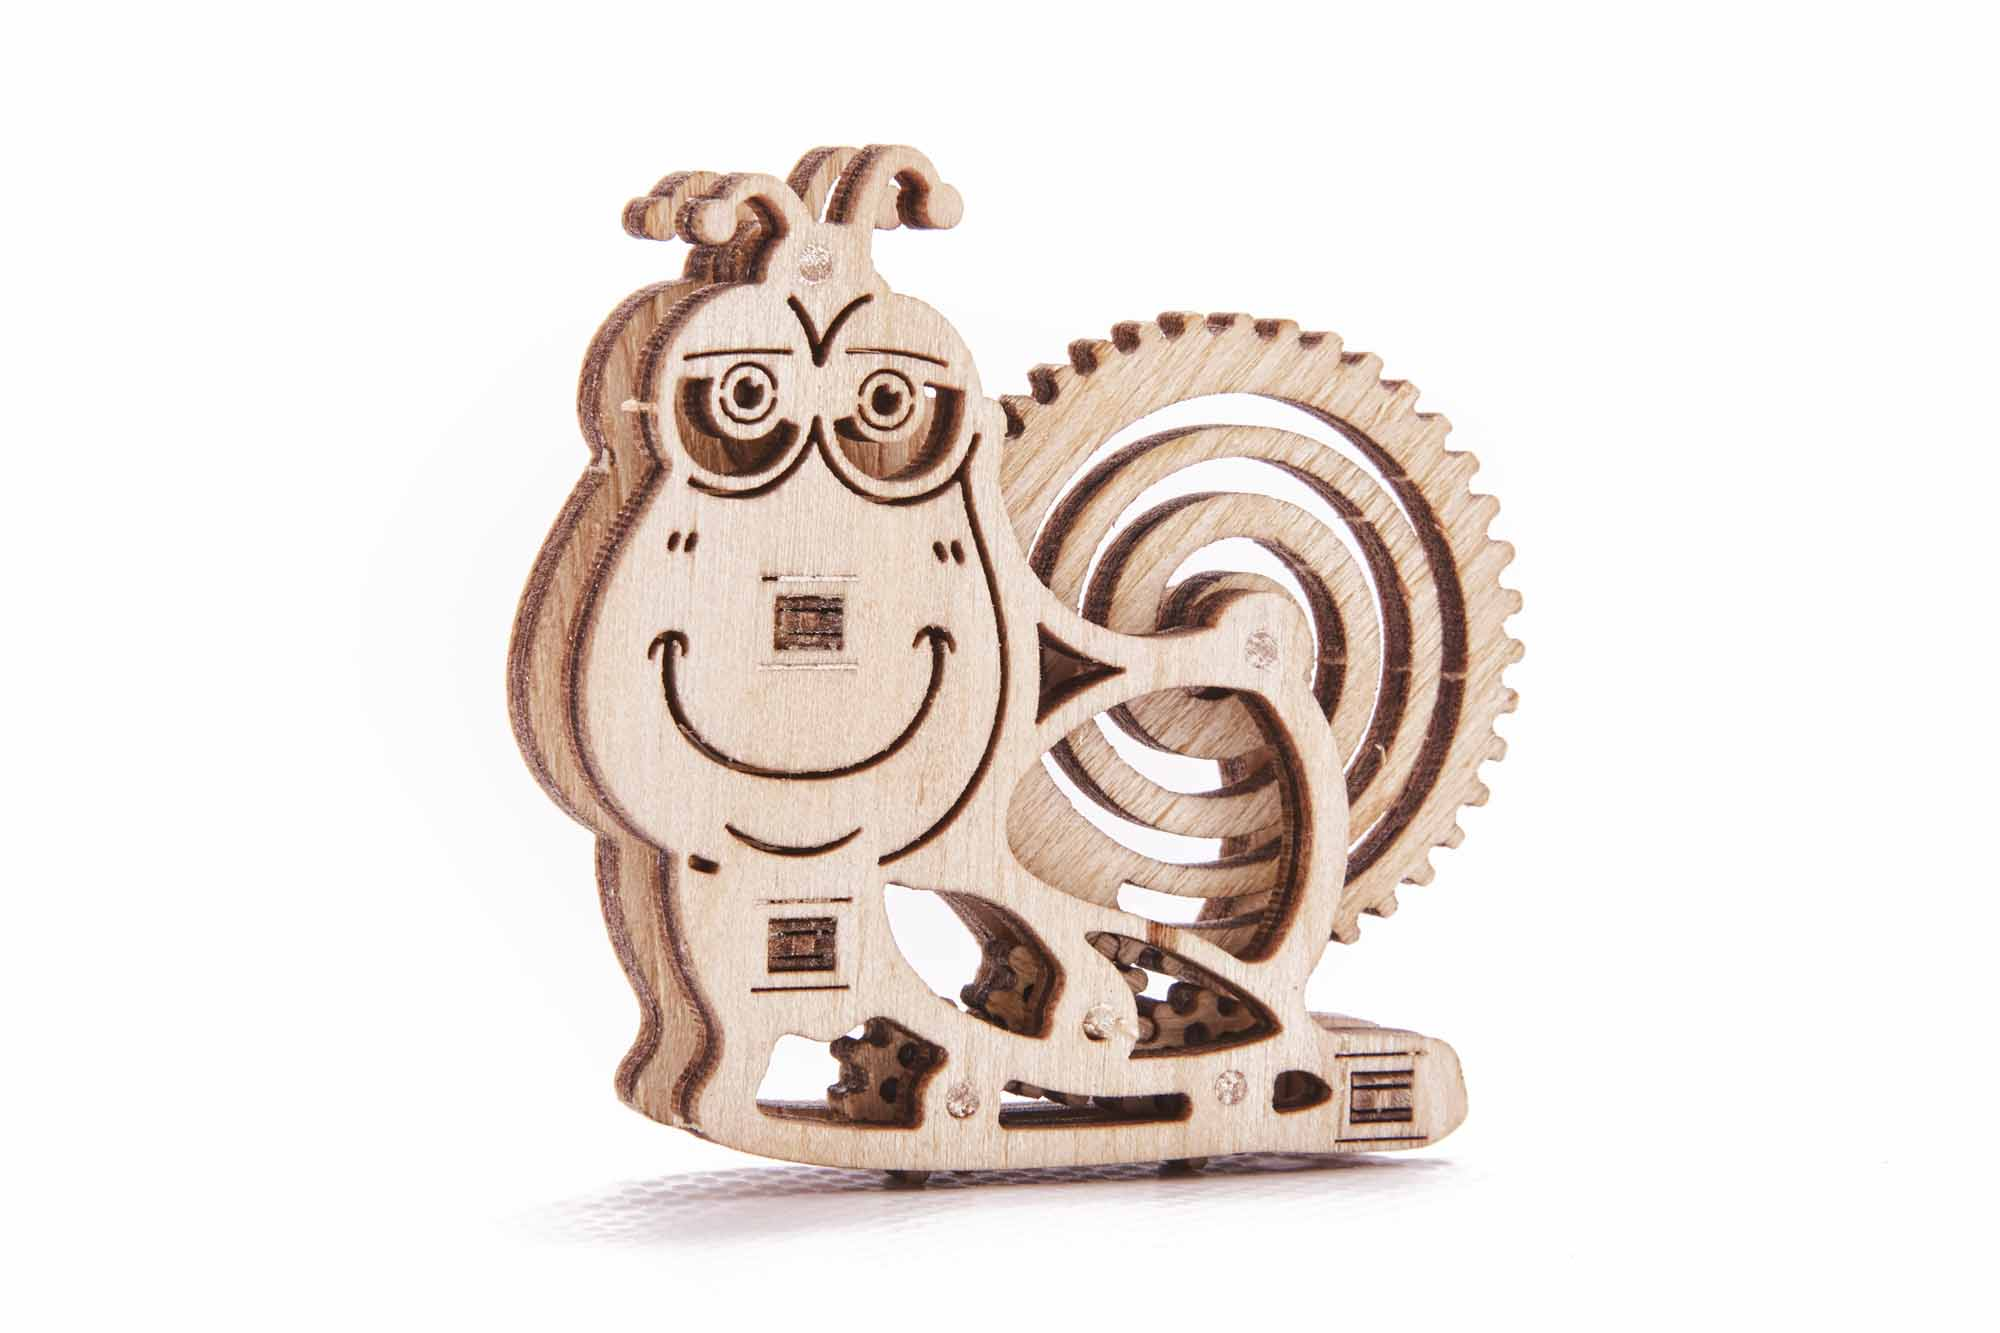 Wooden Woodik Snail - 3d wooden puzzles for kids, good ...